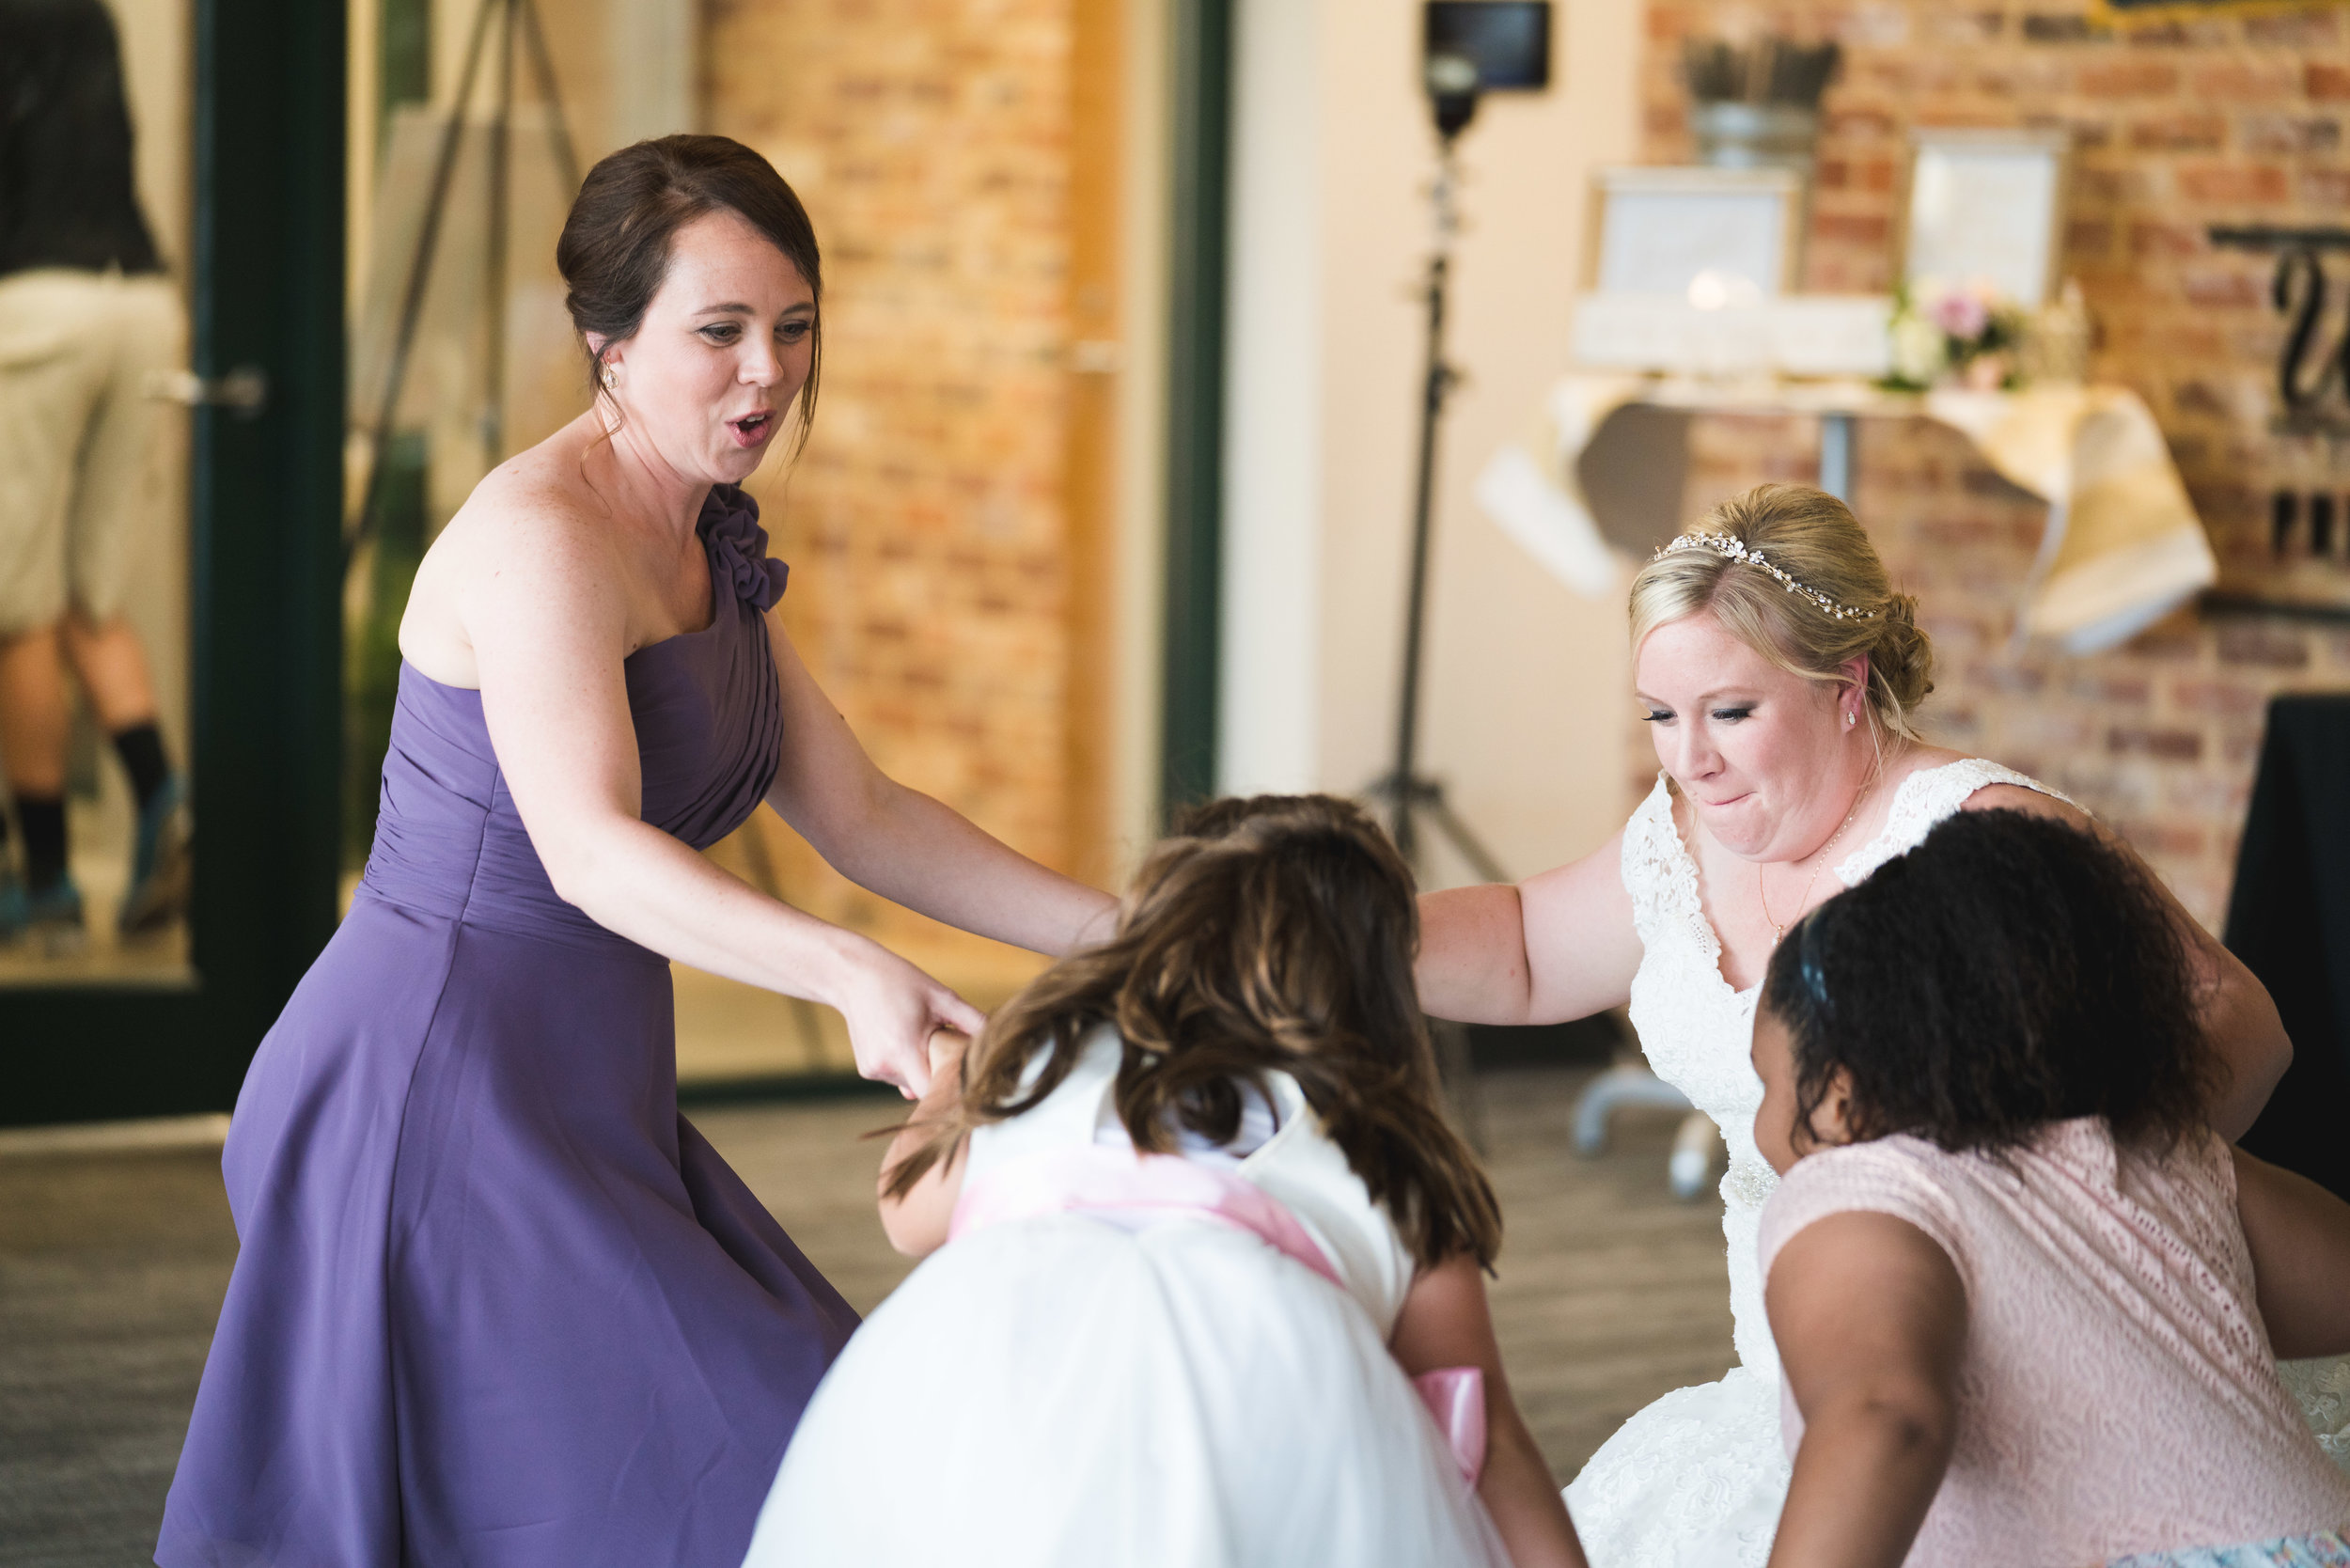 Dancing at Wedding at Flour Field | Downtown Greenville, SC